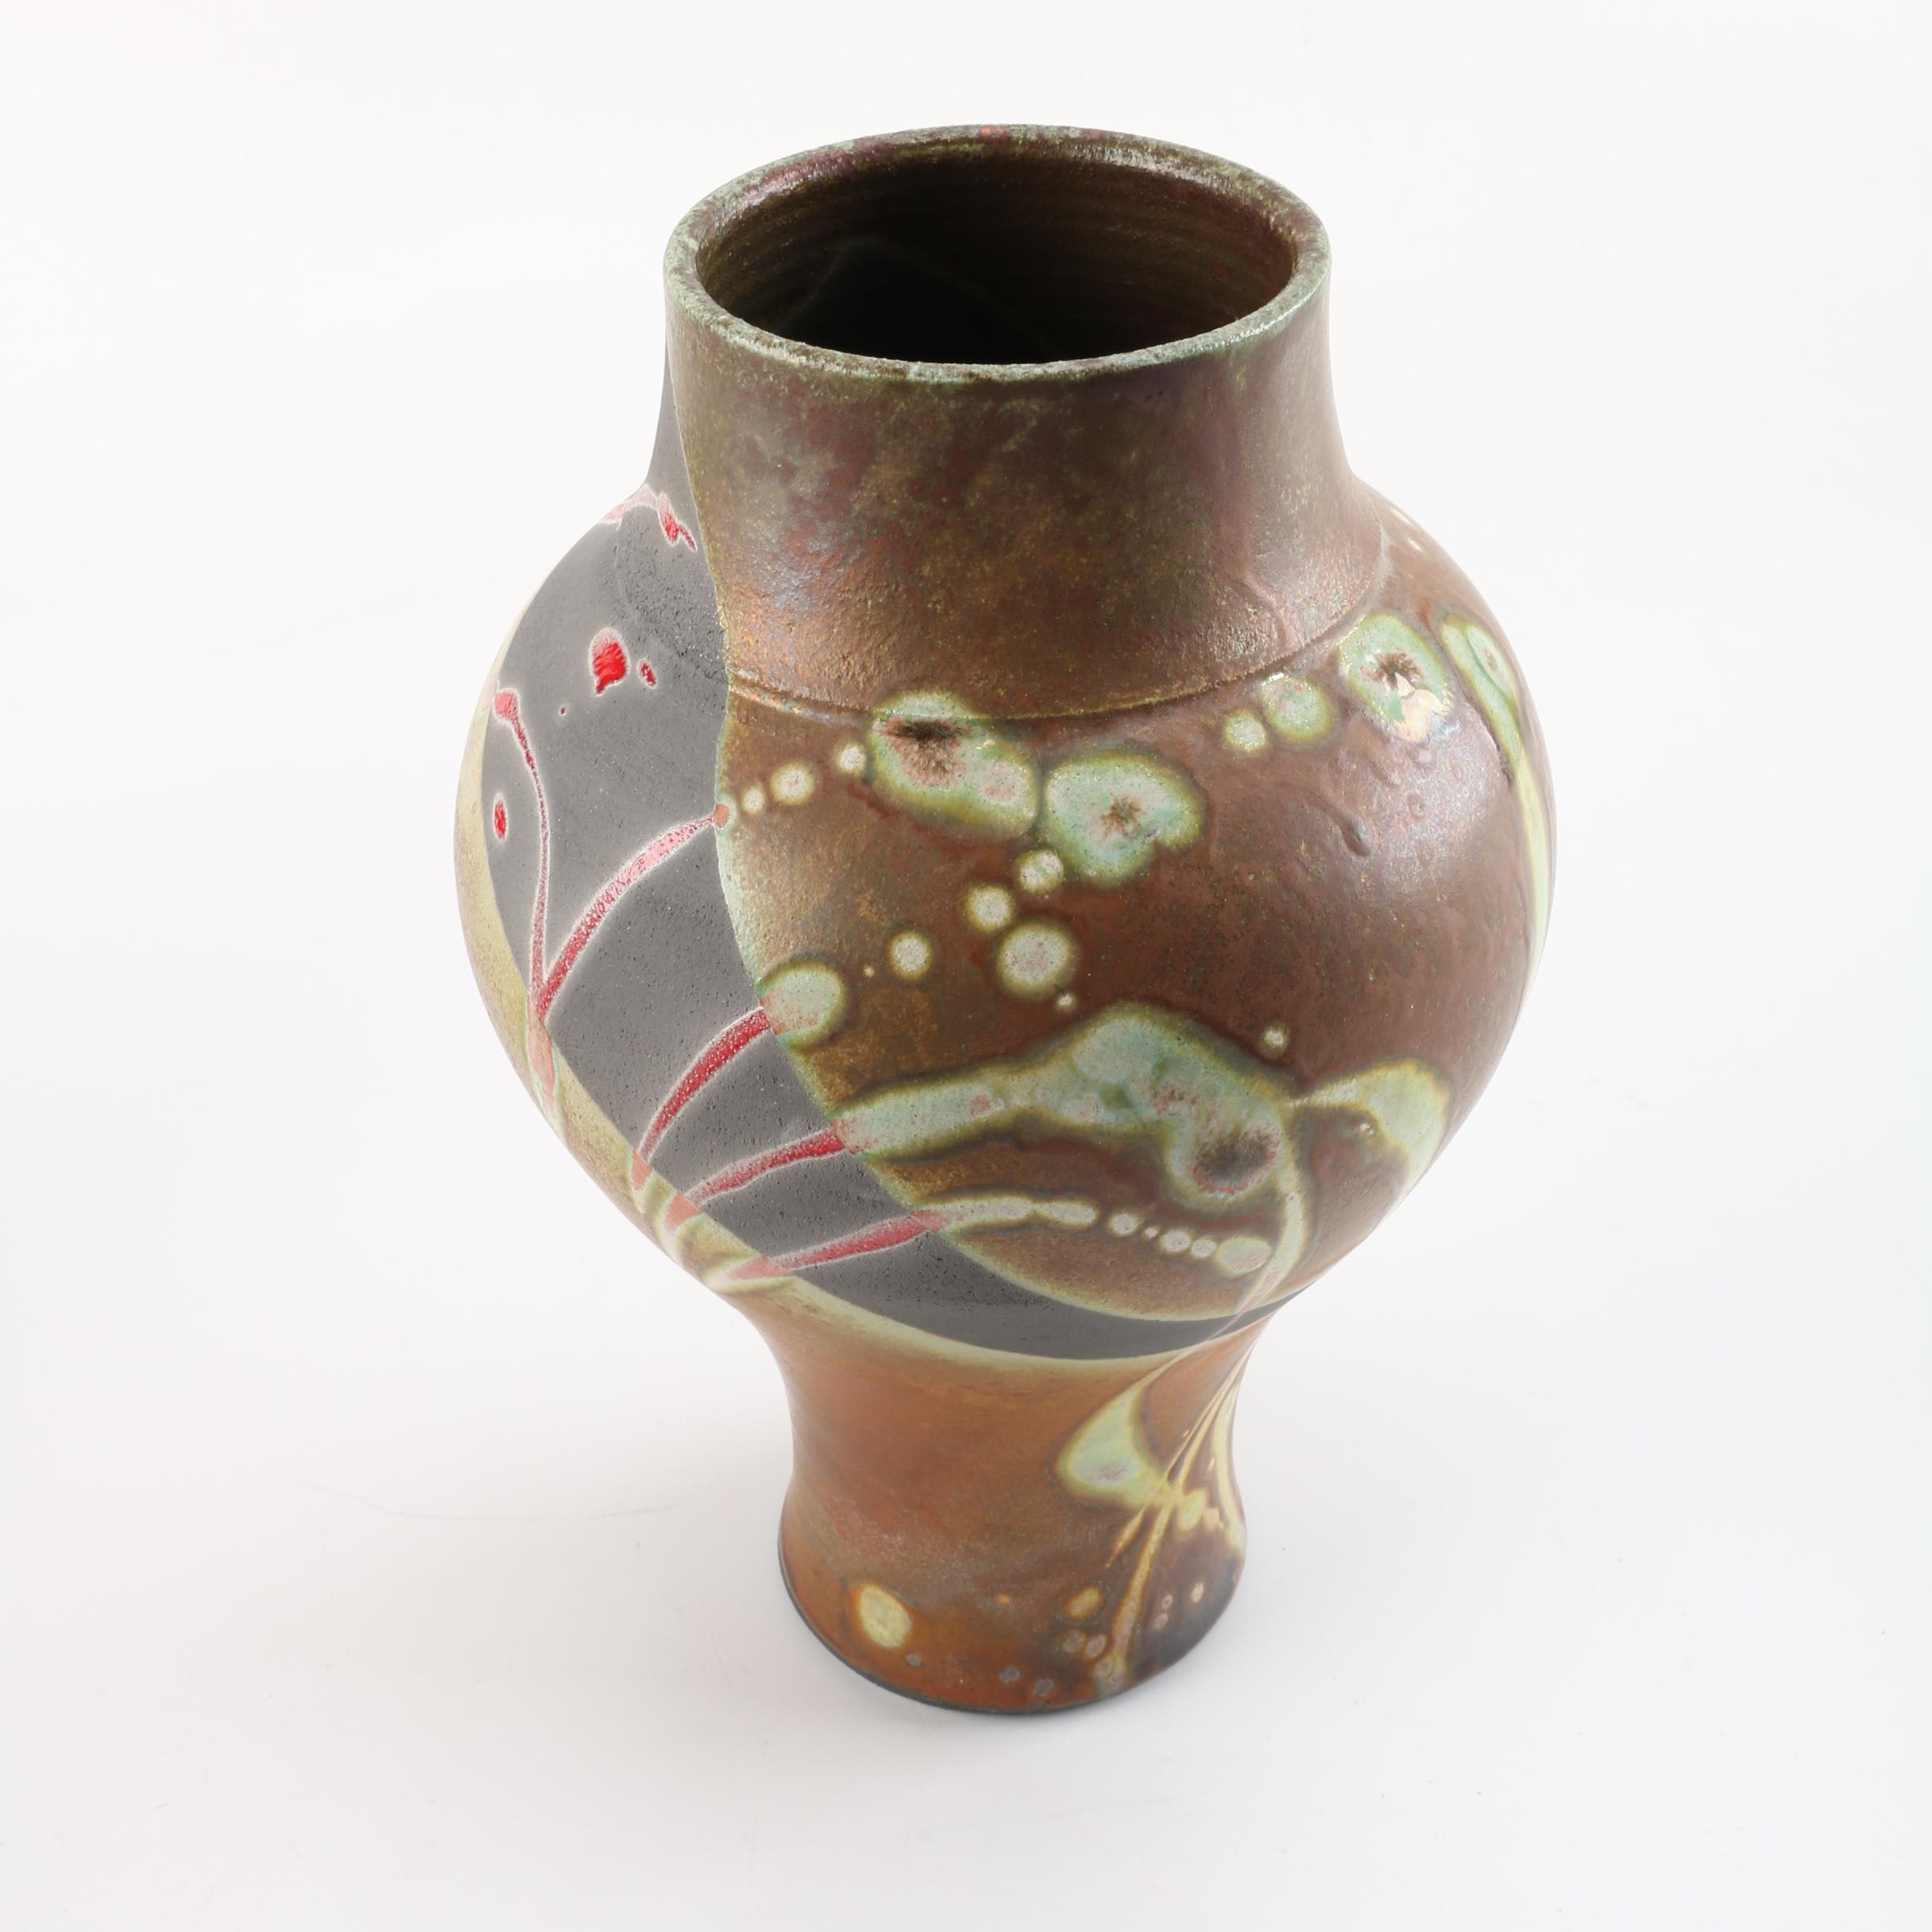 Wheel Thrown Stoneware Vase in Red and Earthtones